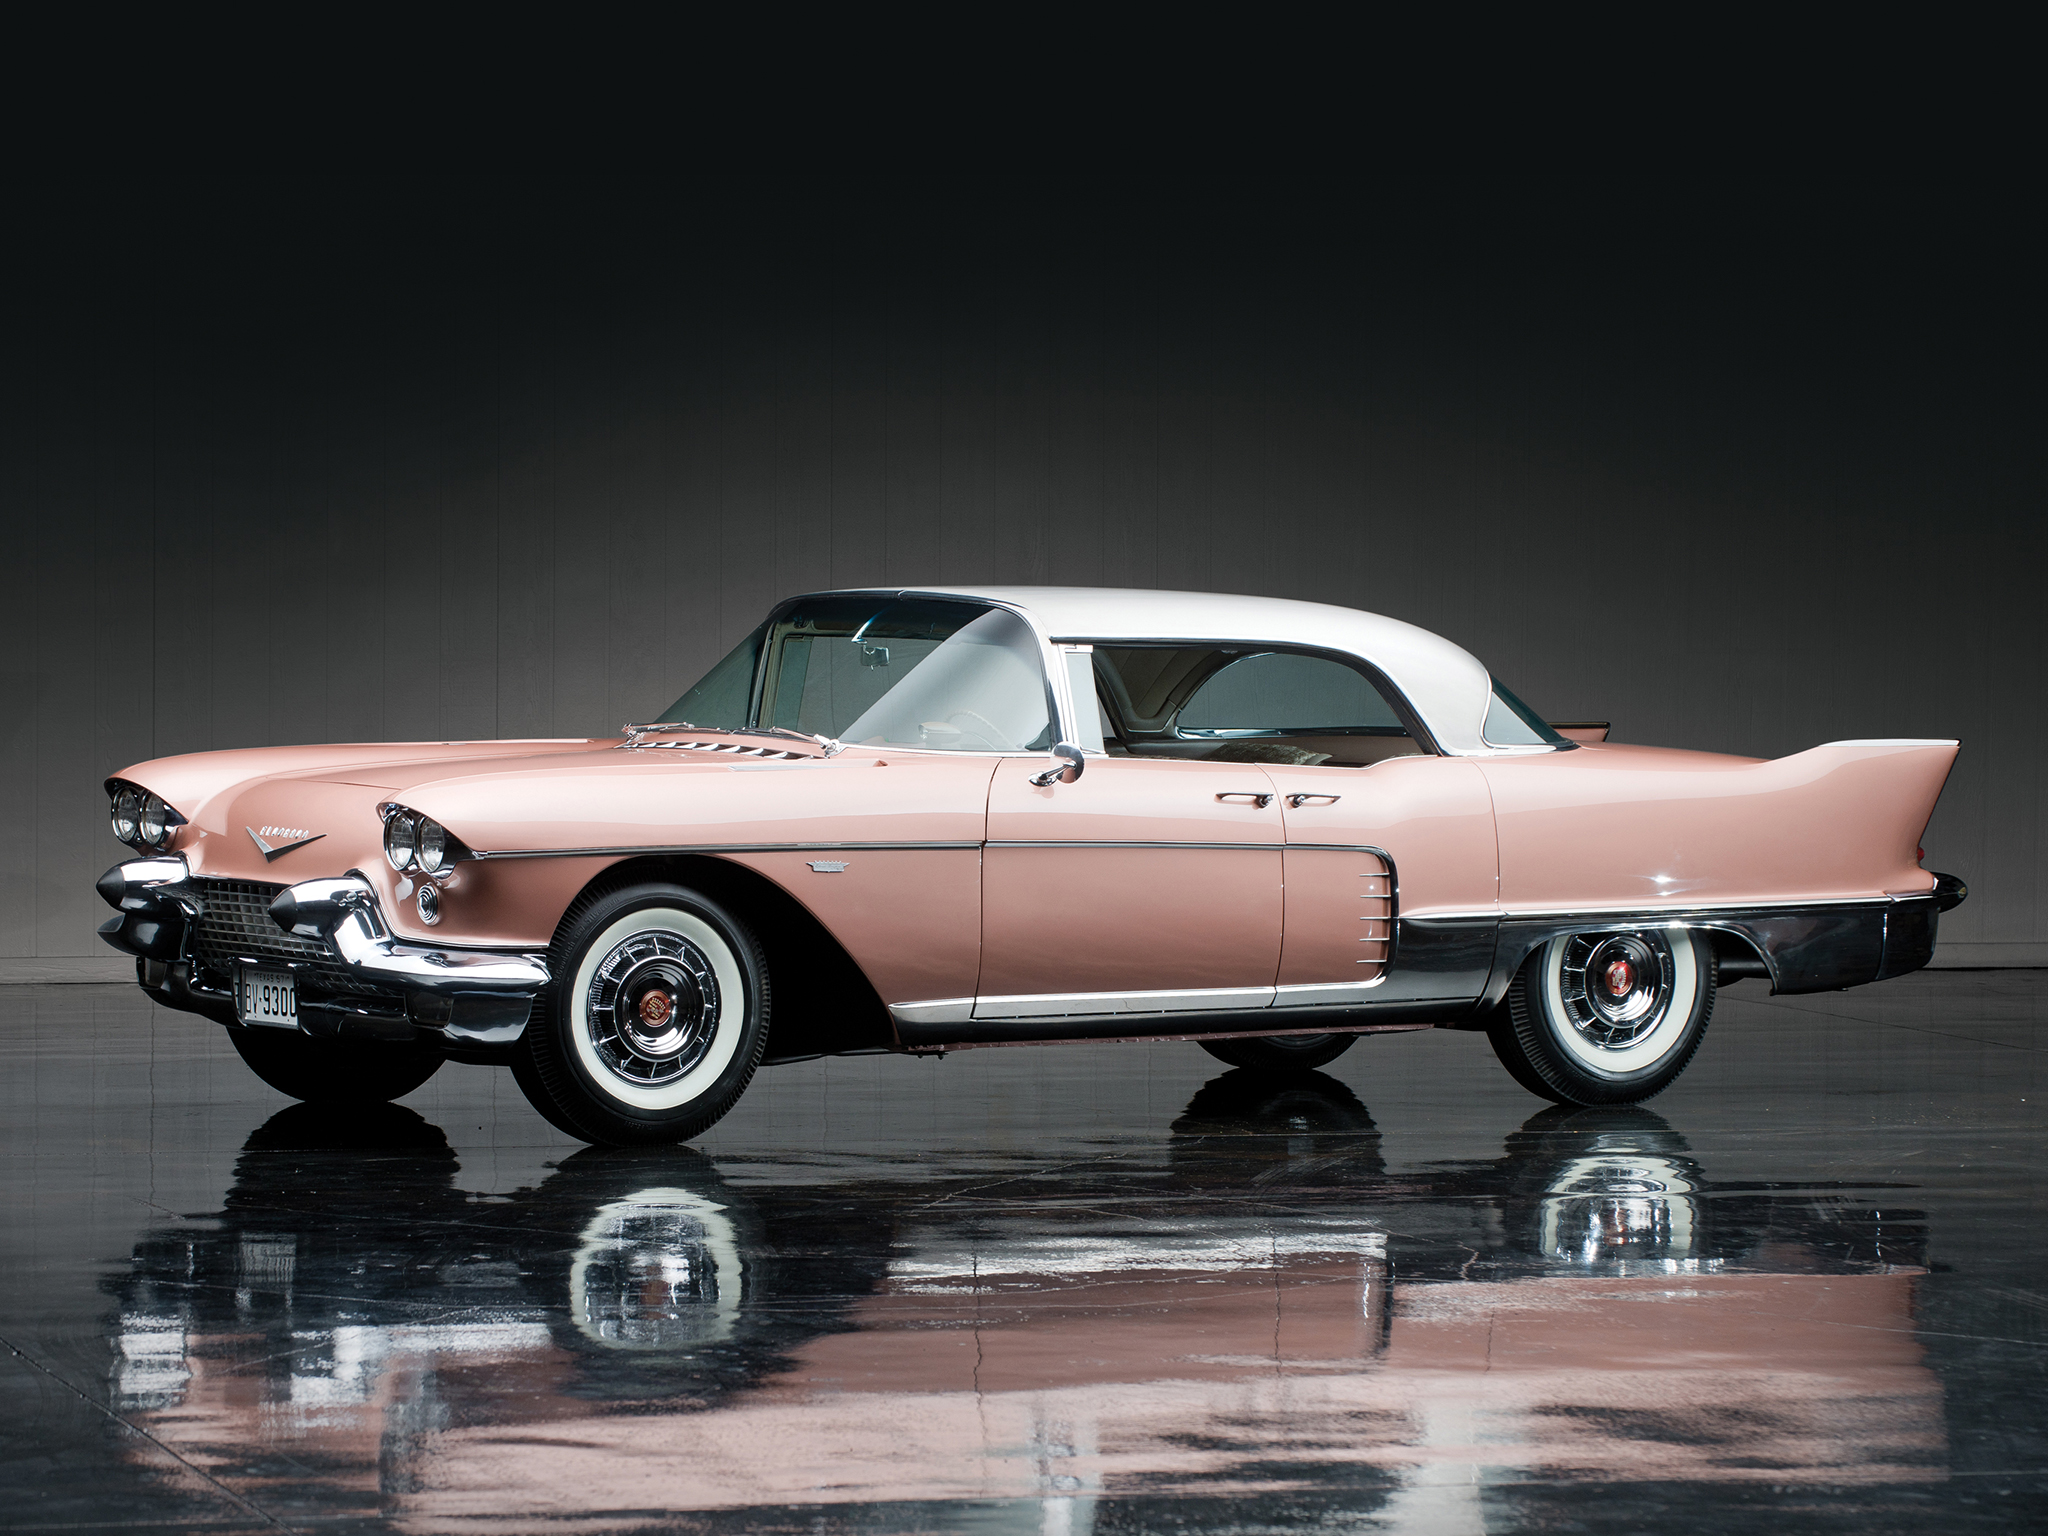 HQ 1958 Cadillac Eldorado Brougham Wallpapers | File 1625.78Kb